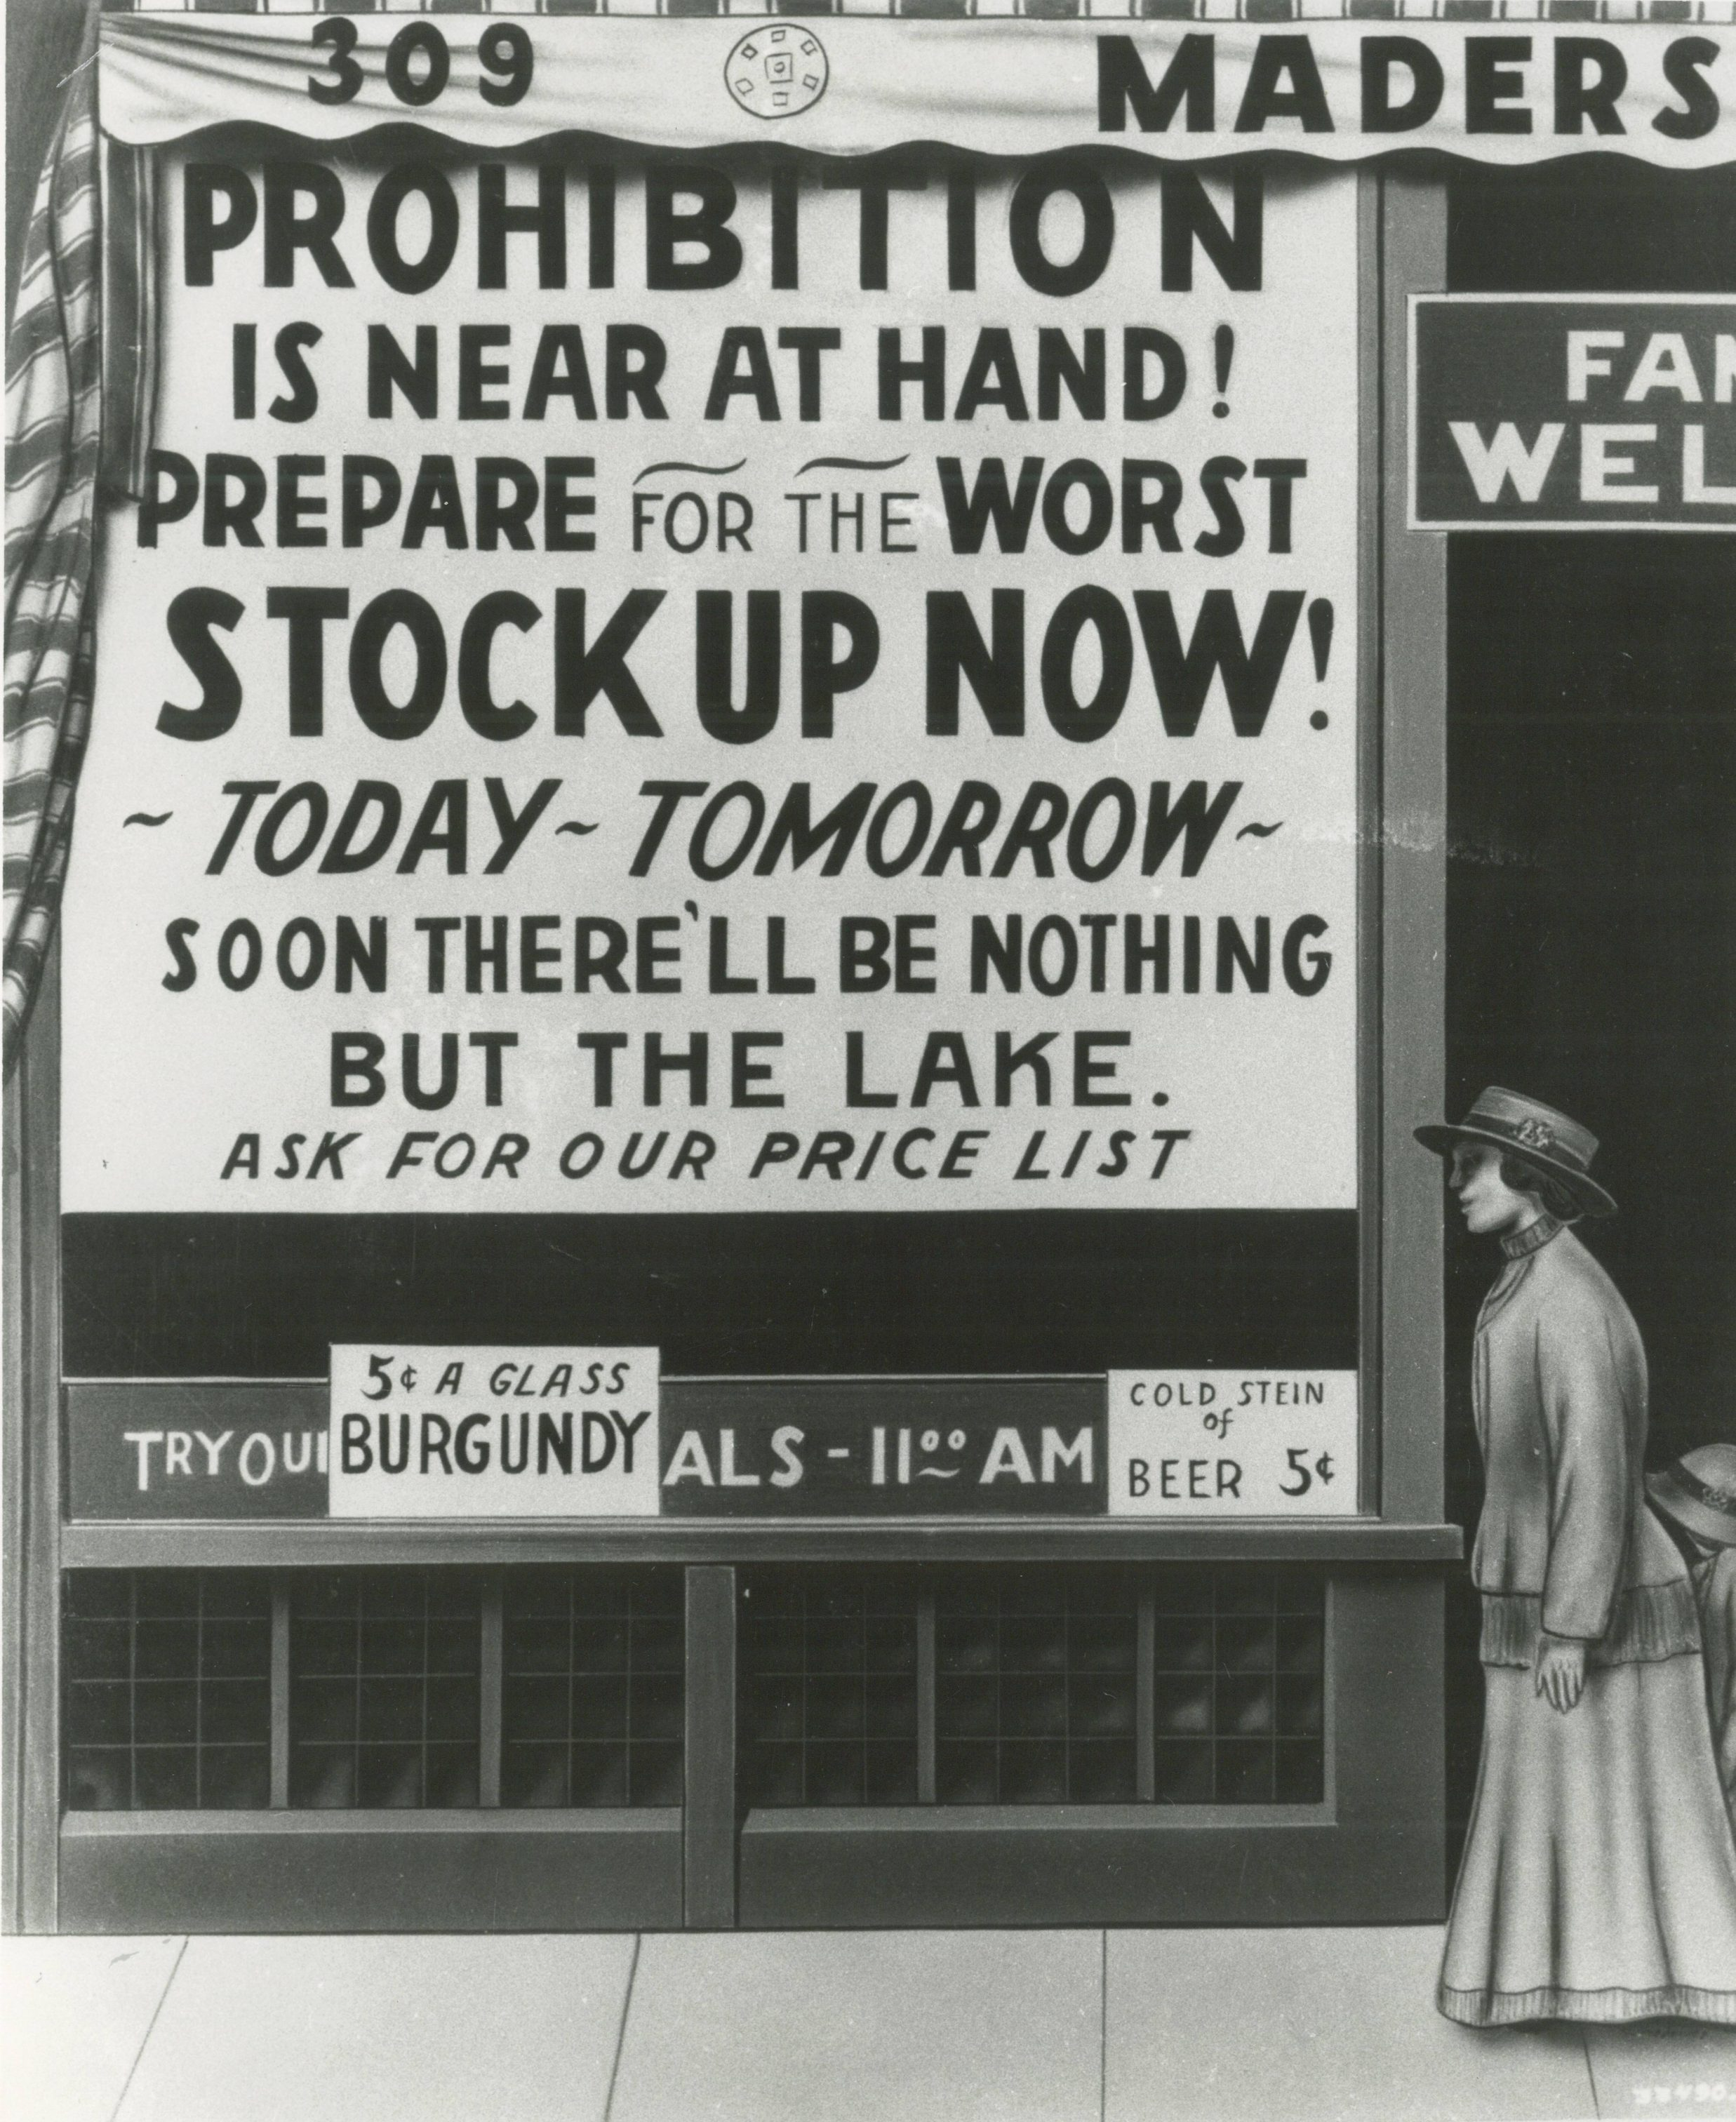 Just prior to prohibition going into effect, Mader's Restaurant released this advertisement encouraging people to stock up on liquor and beer.